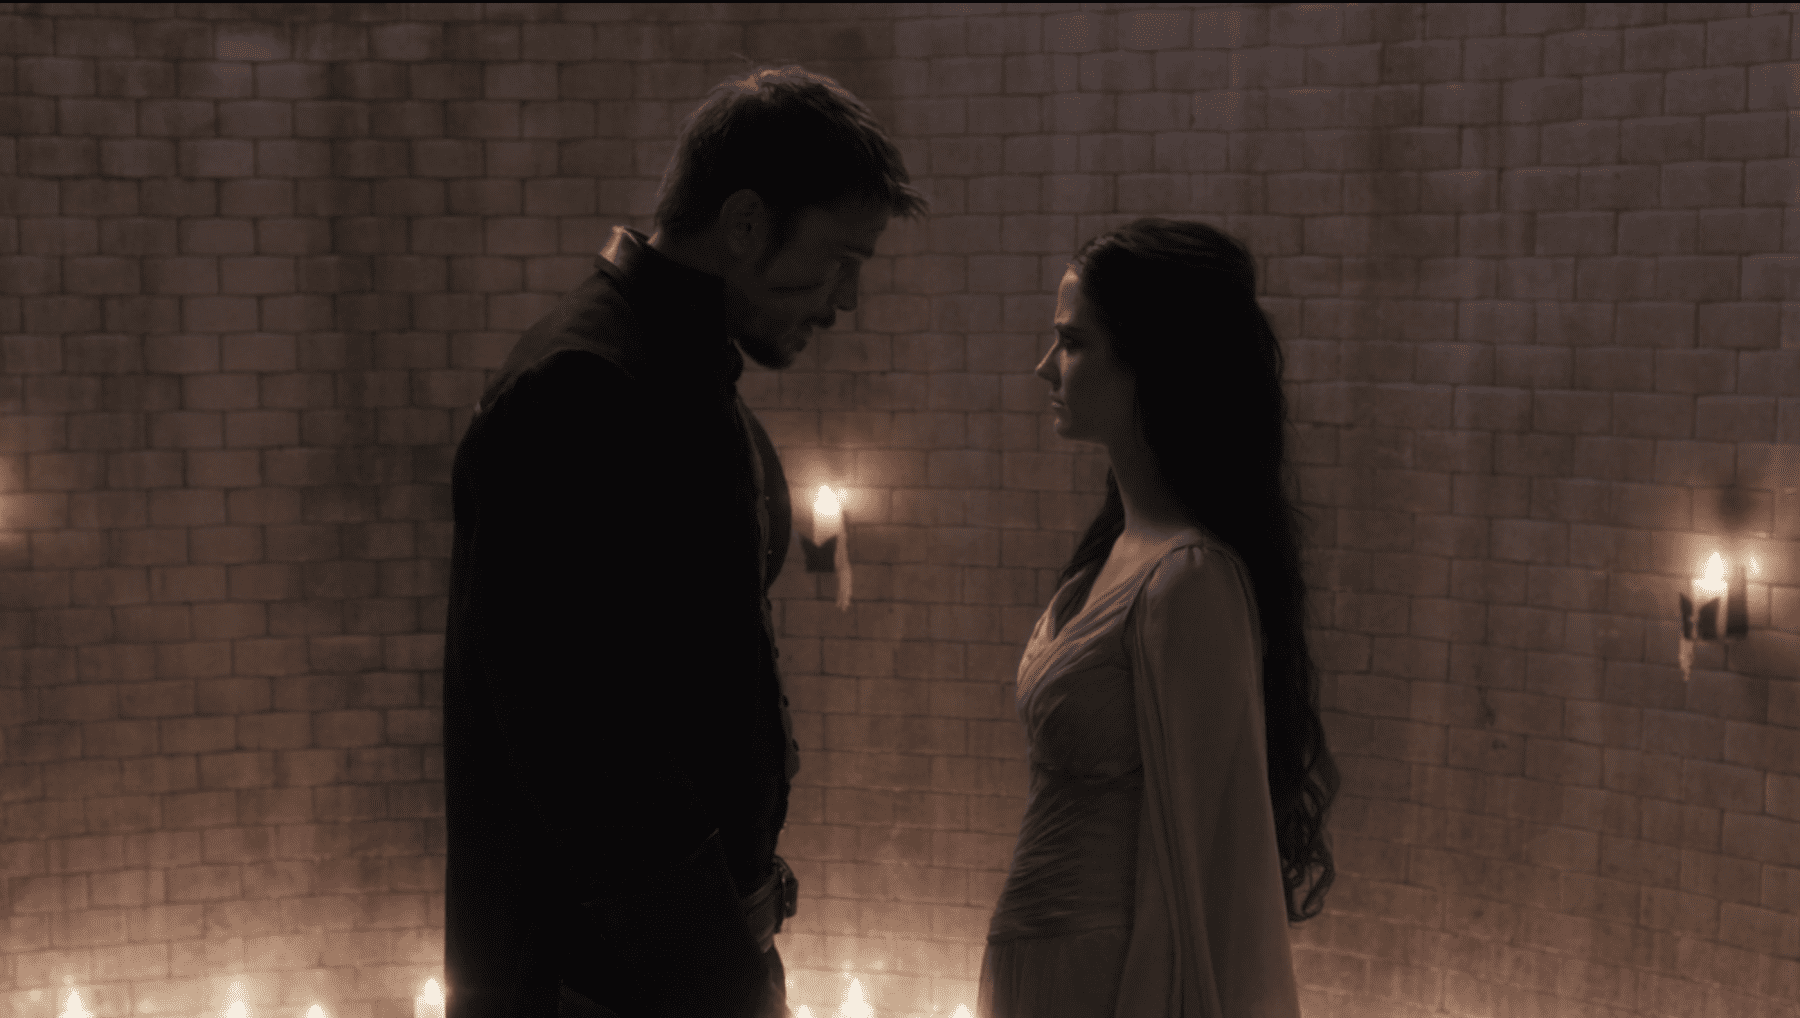 Vanessa (Eva Green) begs Ethan (Josh Hartnett) to end her life in the season 3 finale of Penny Dreadful